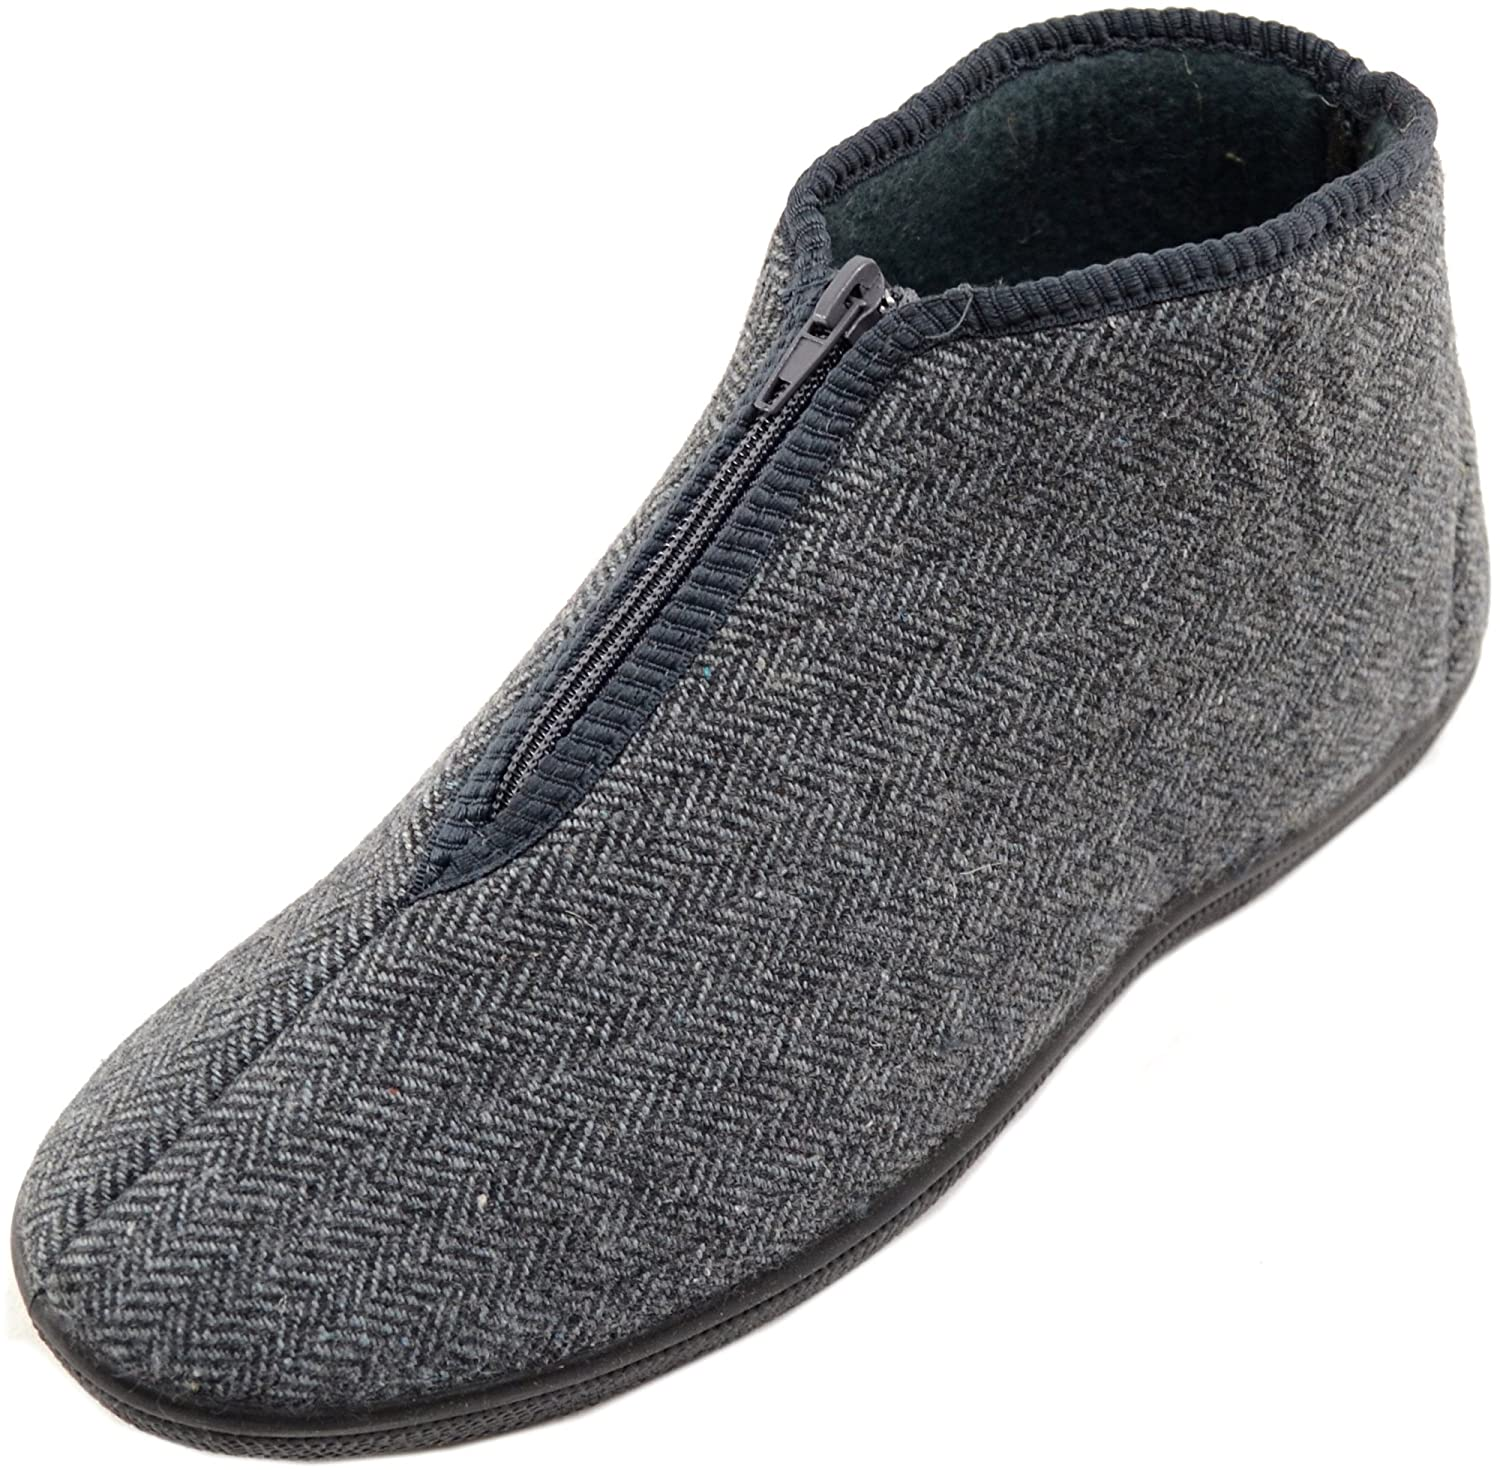 945bd8614c0 Mens / Gents Herringbone Style Zip Up Boots / Slippers / Indoor Shoes